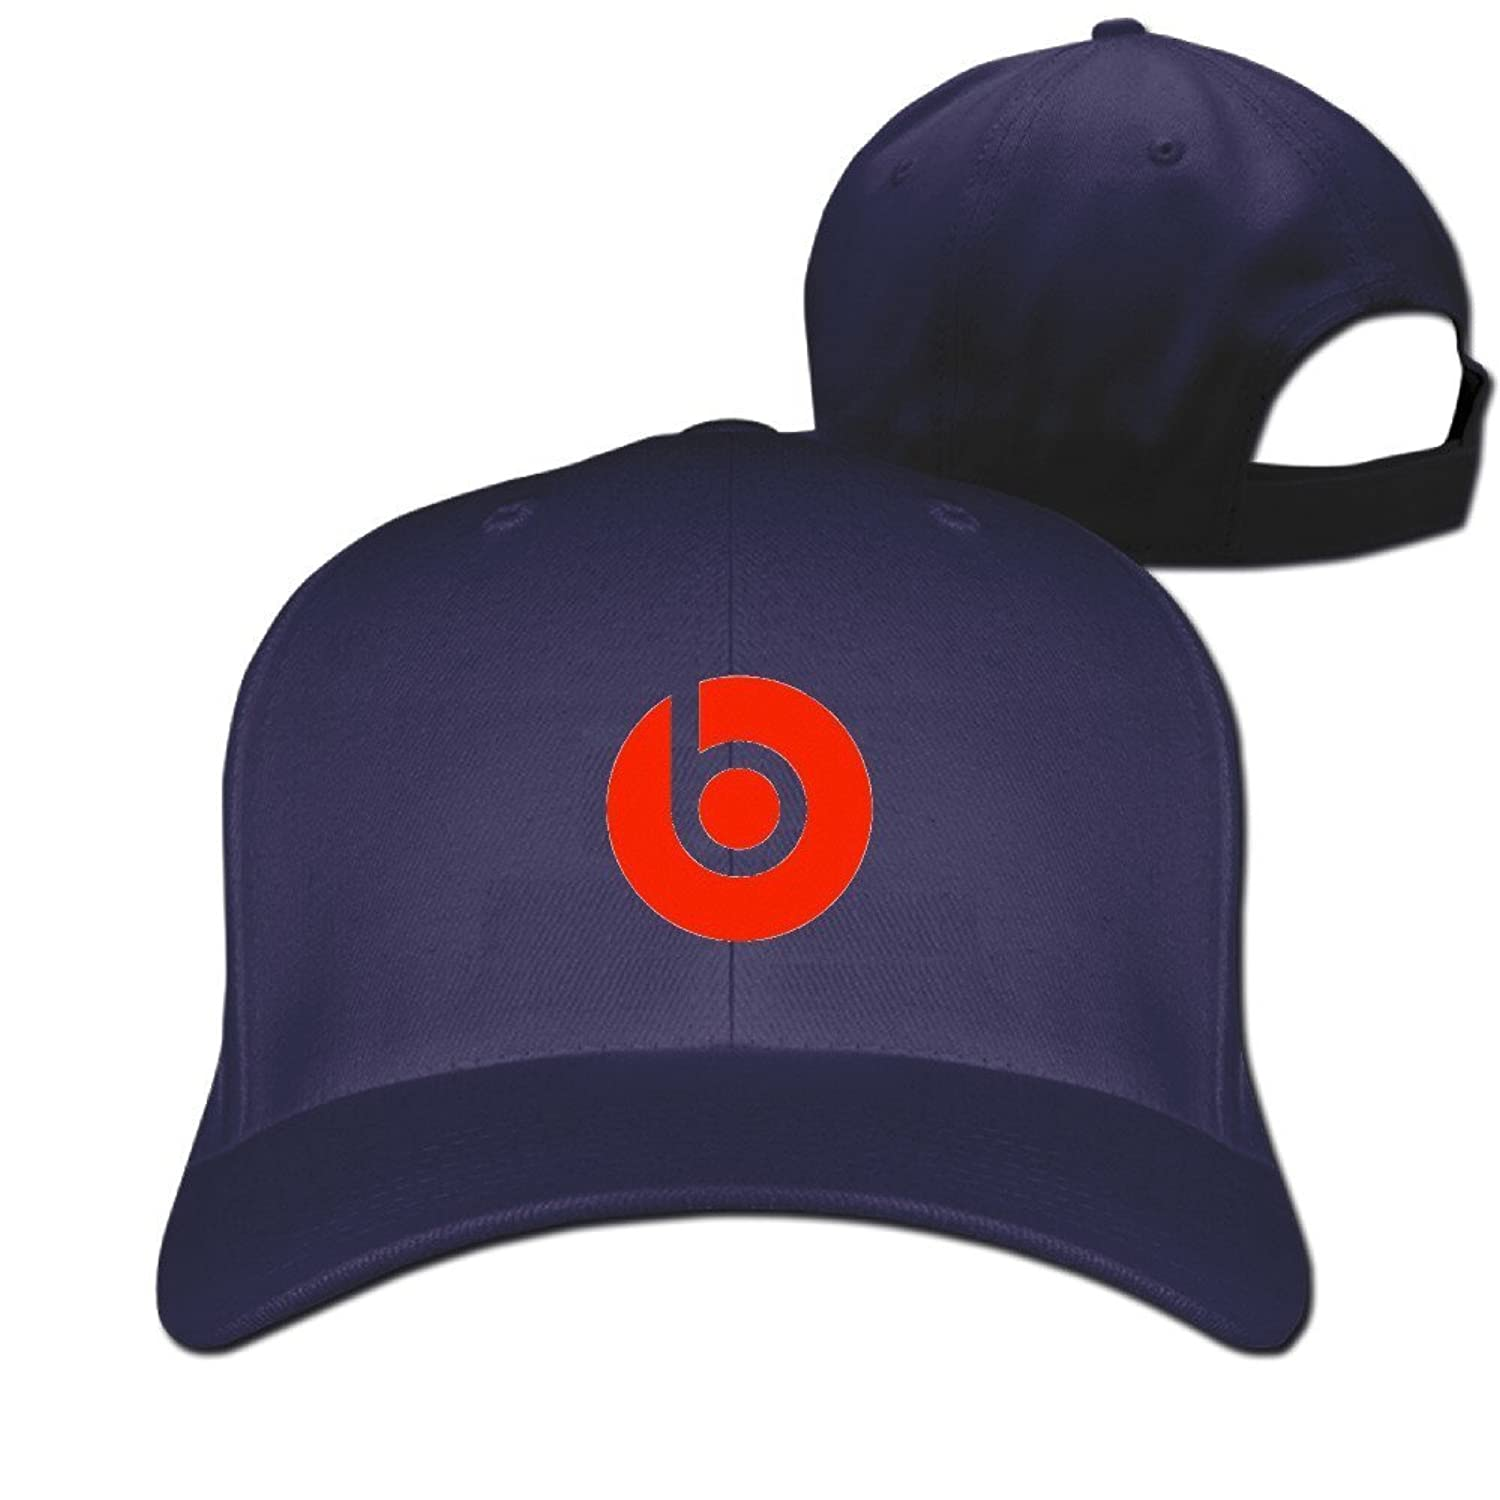 GXGML Beats-by-dre-logo Unisex Fashion Adjustable Pure 100% Cotton Peaked Cap Sports Washed Baseball Hunting Cap Hunting Cap Red